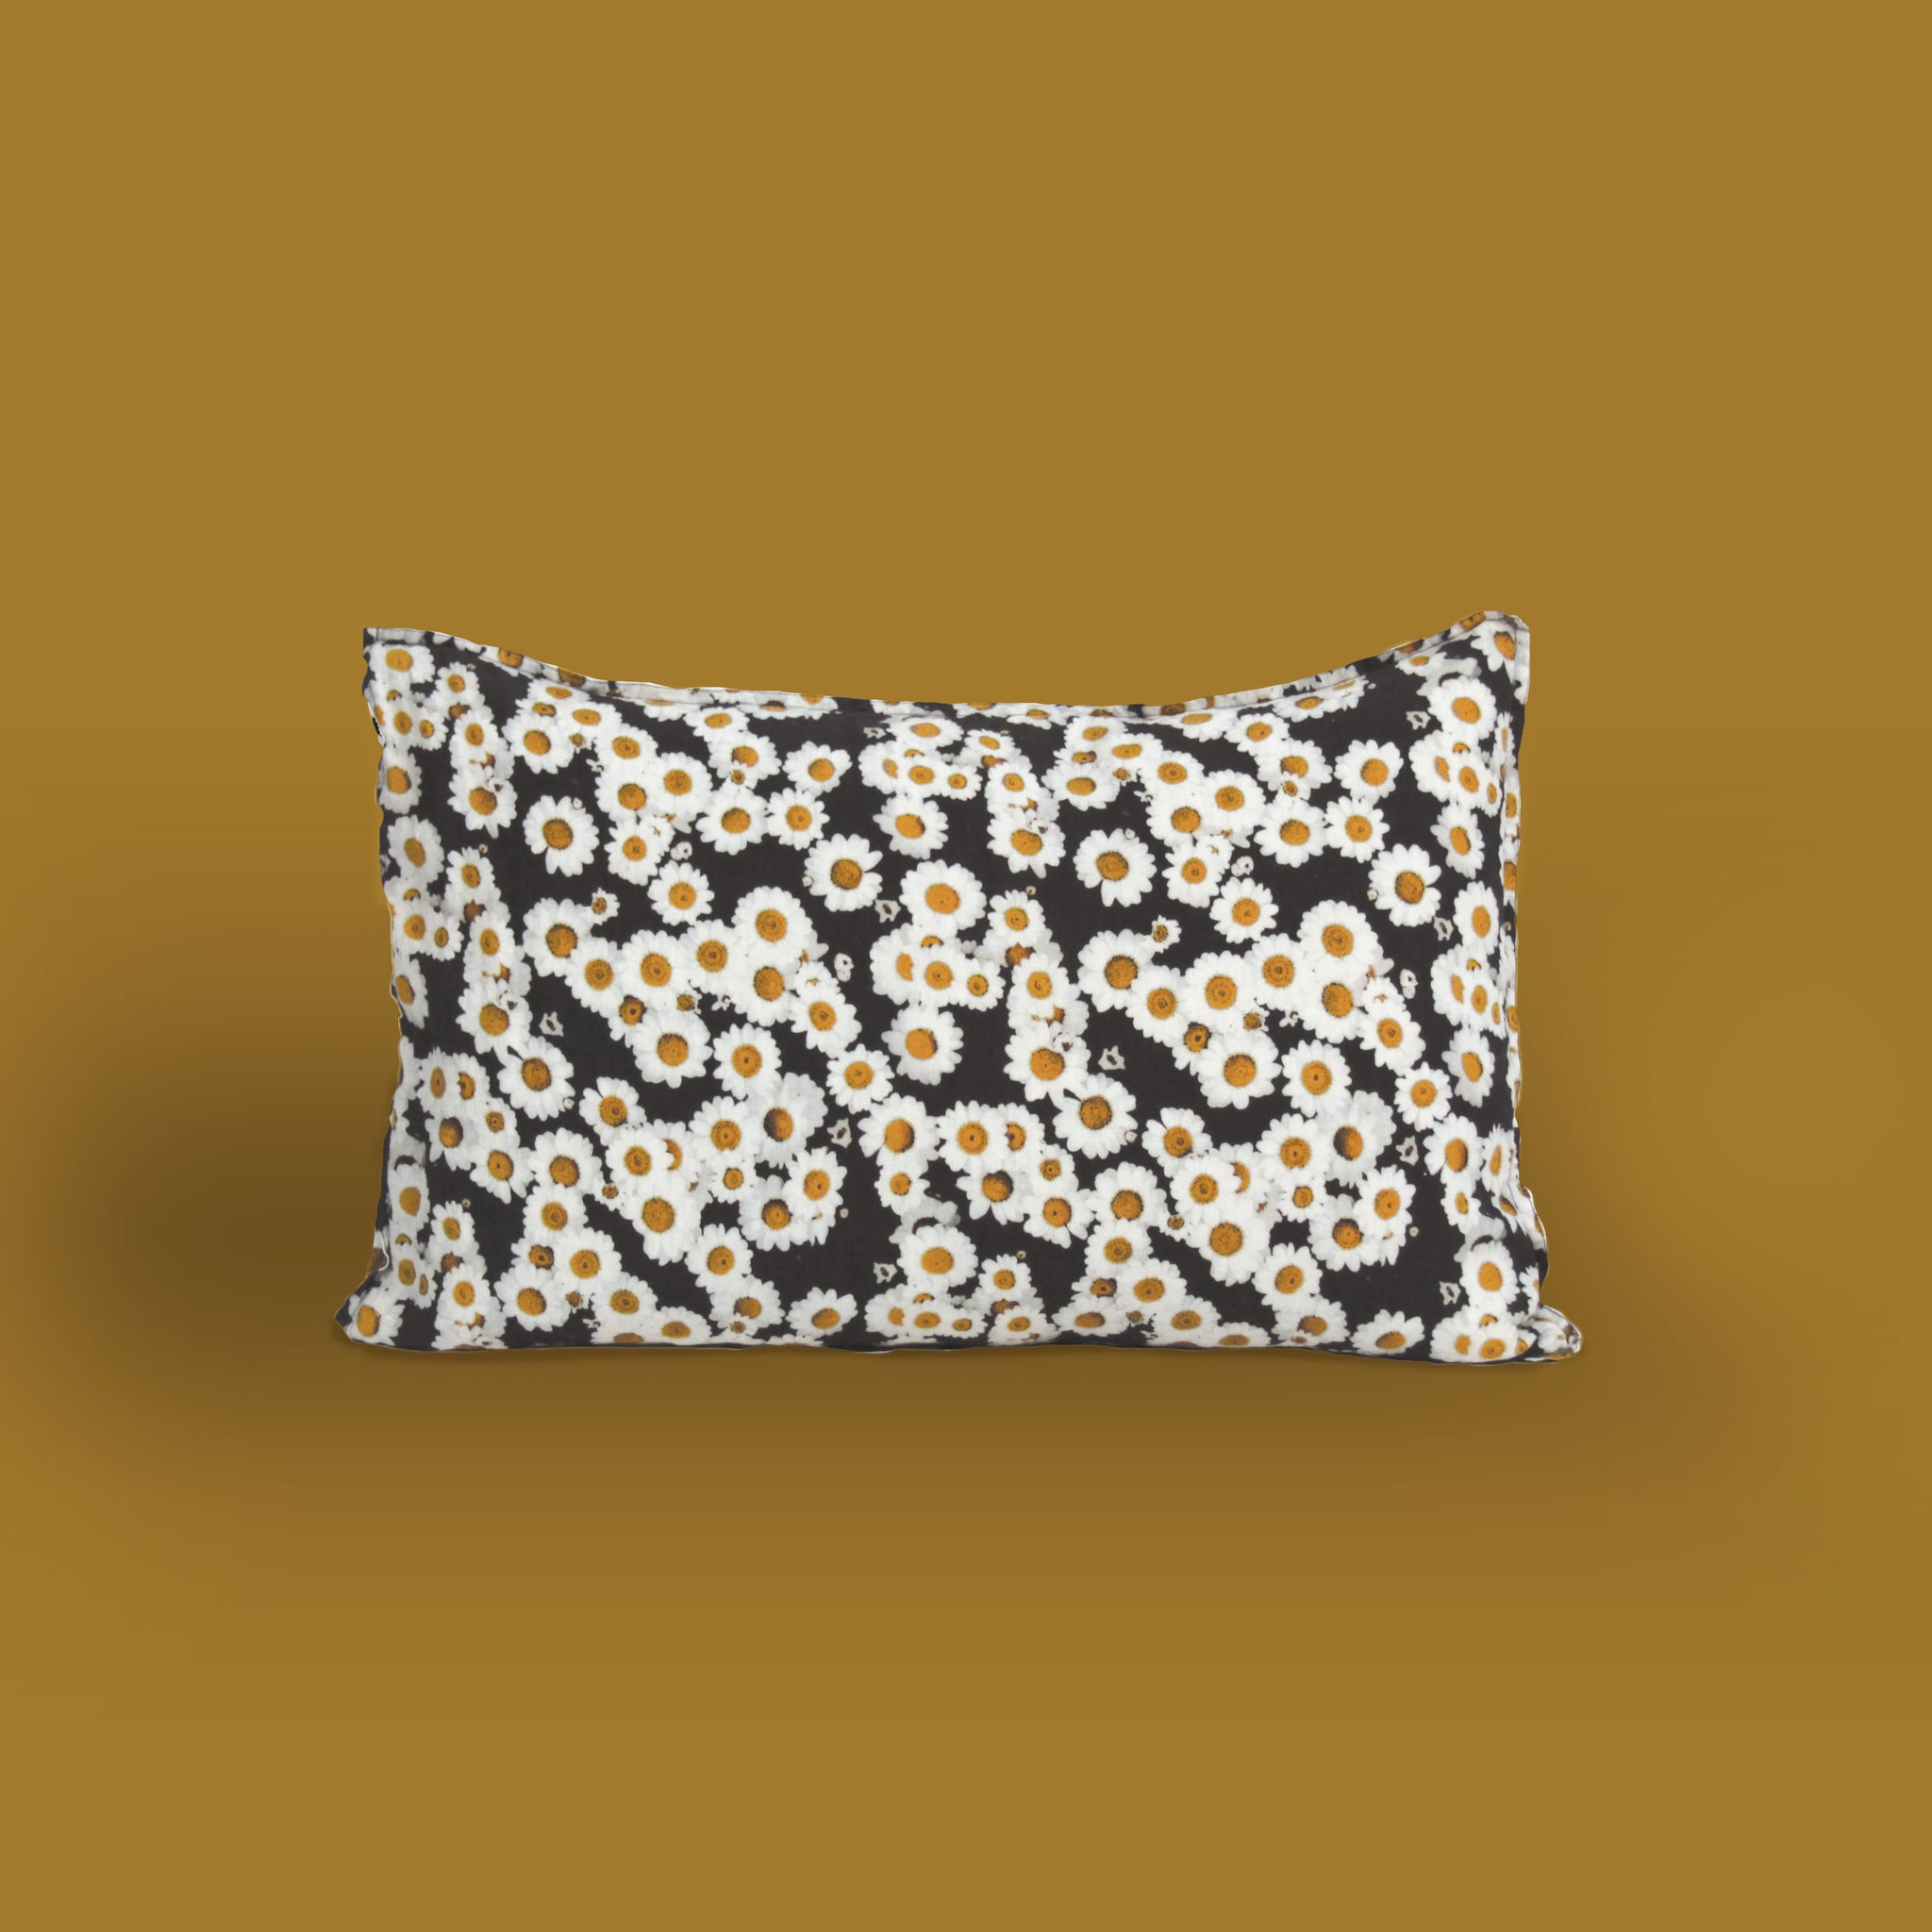 daisy print pillowcase in 100% linen